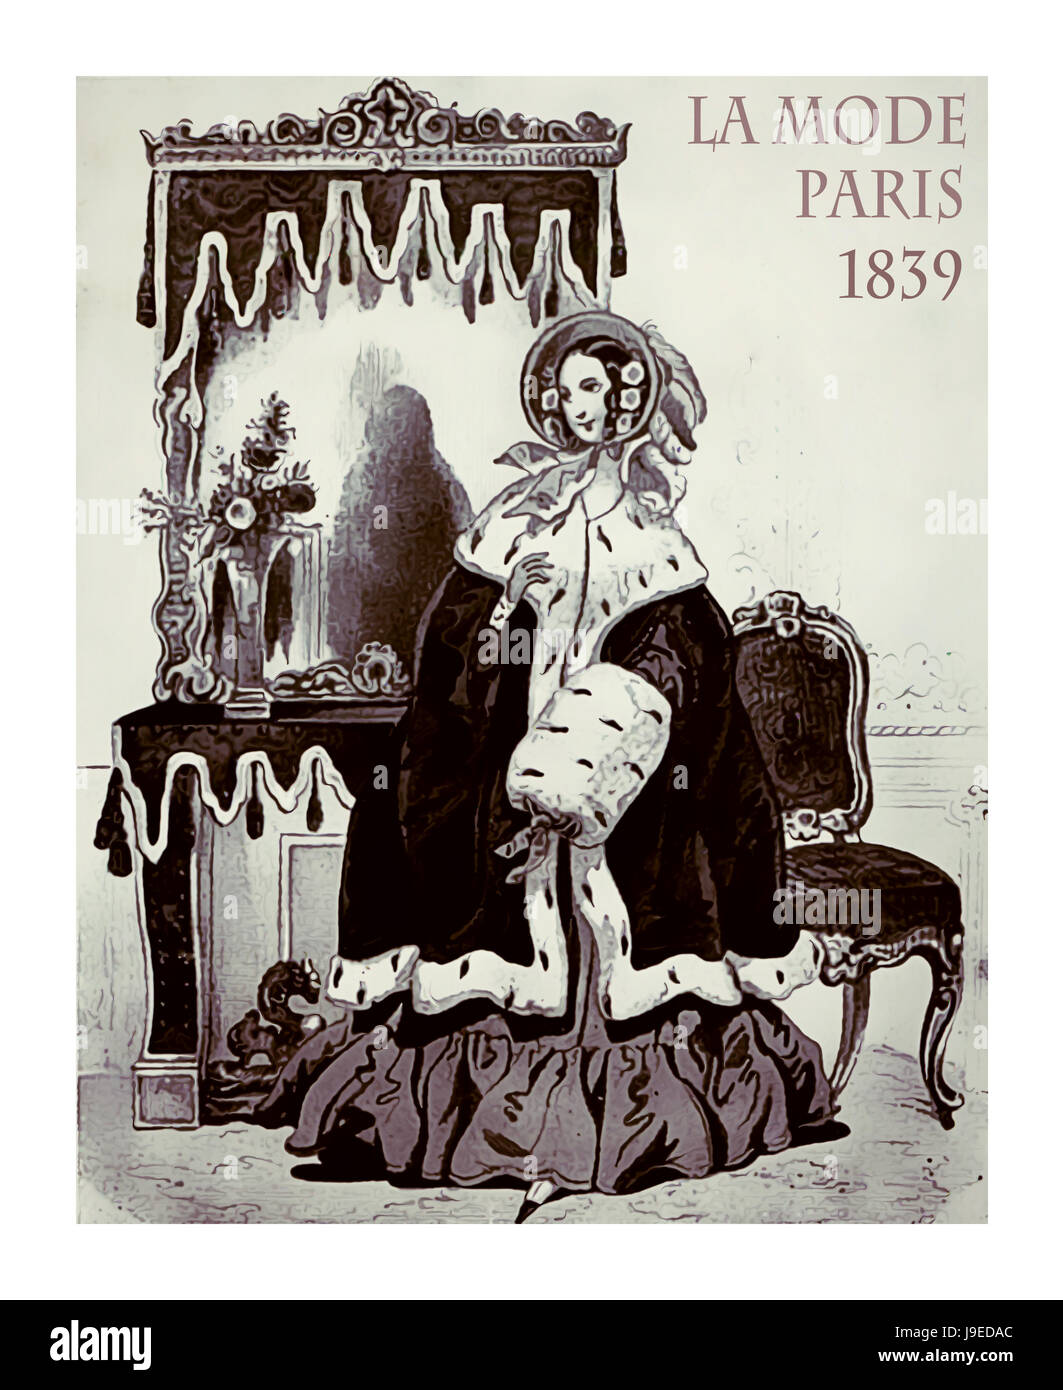 Paris 1839 fashion, young lady fancy dressed with cloak, ermine fur and muffl ready to go outside, vintage illustration - Stock Image